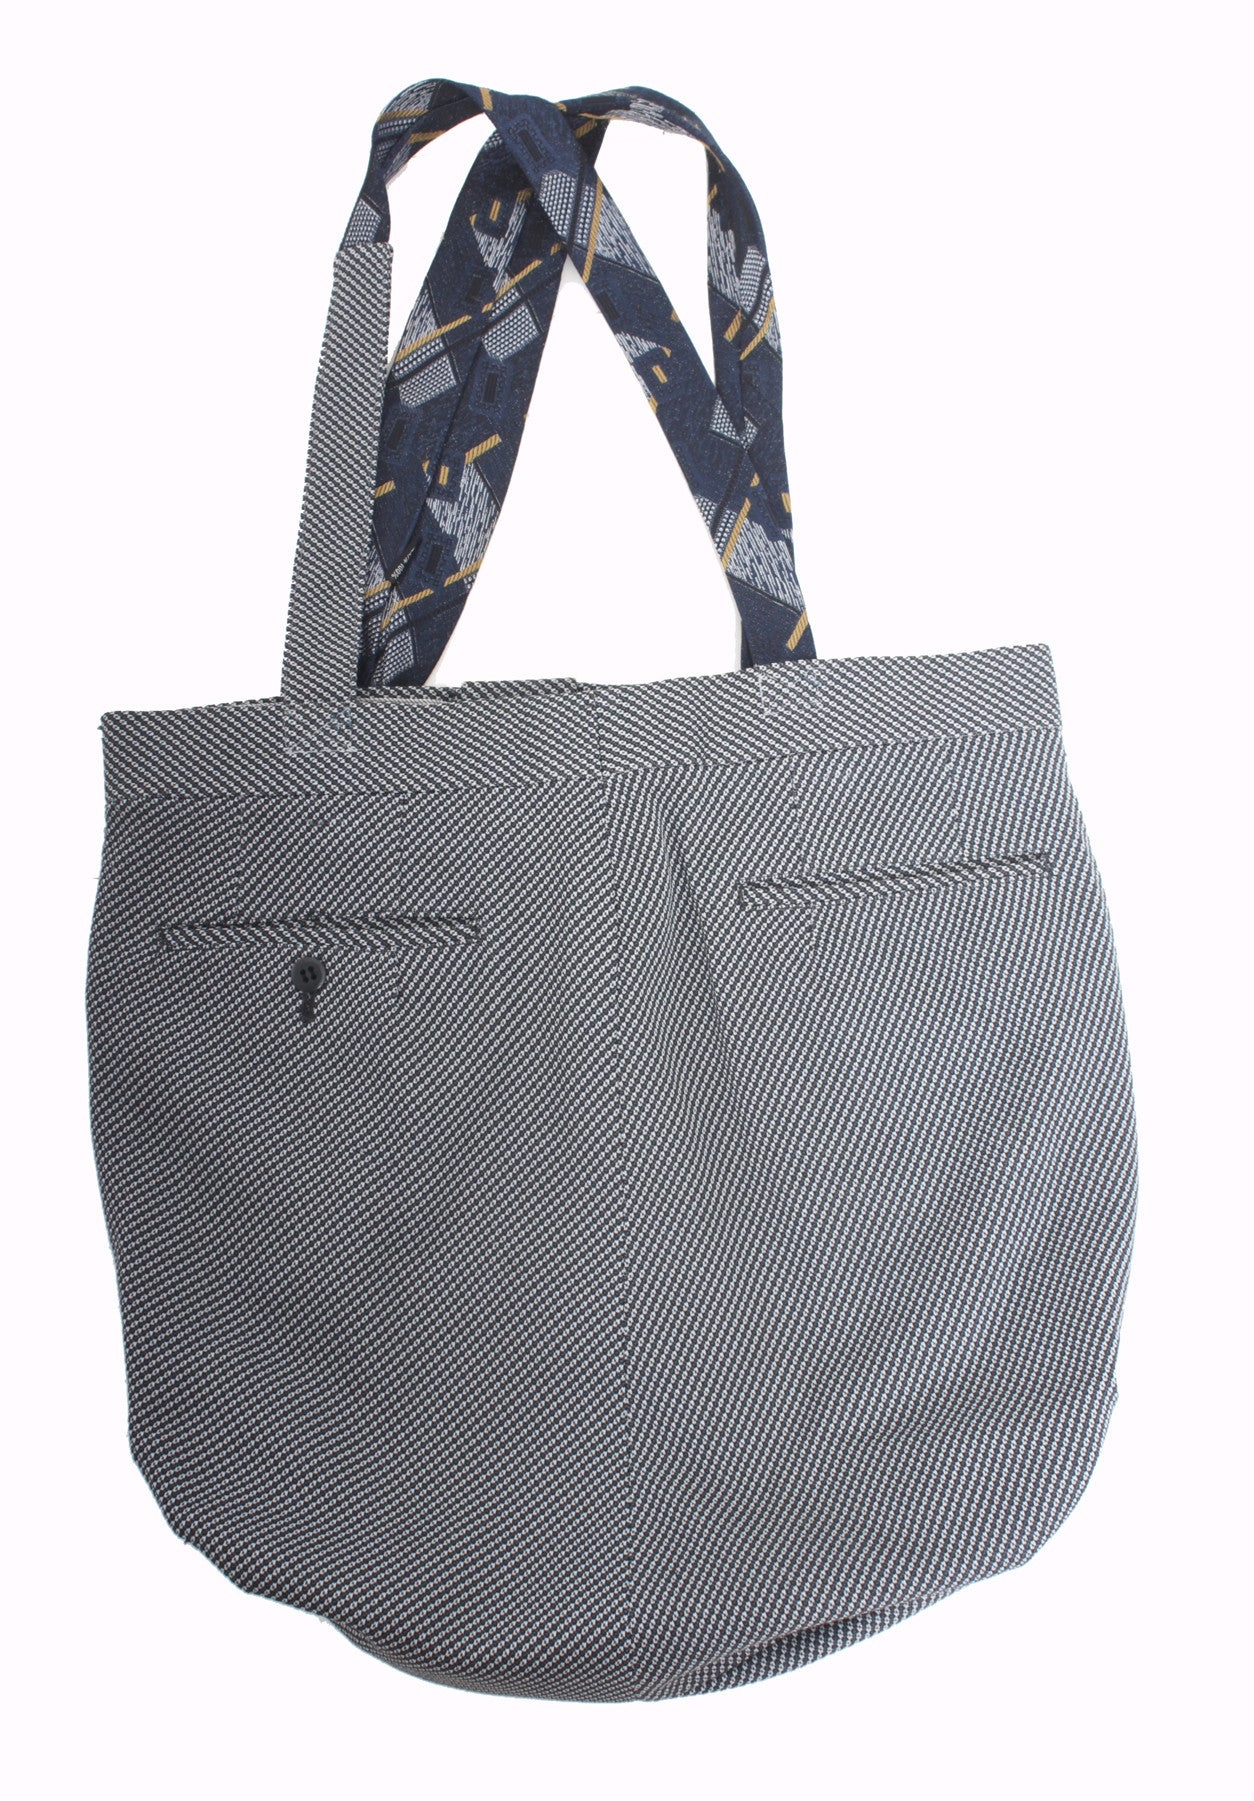 Trous Tote Bag